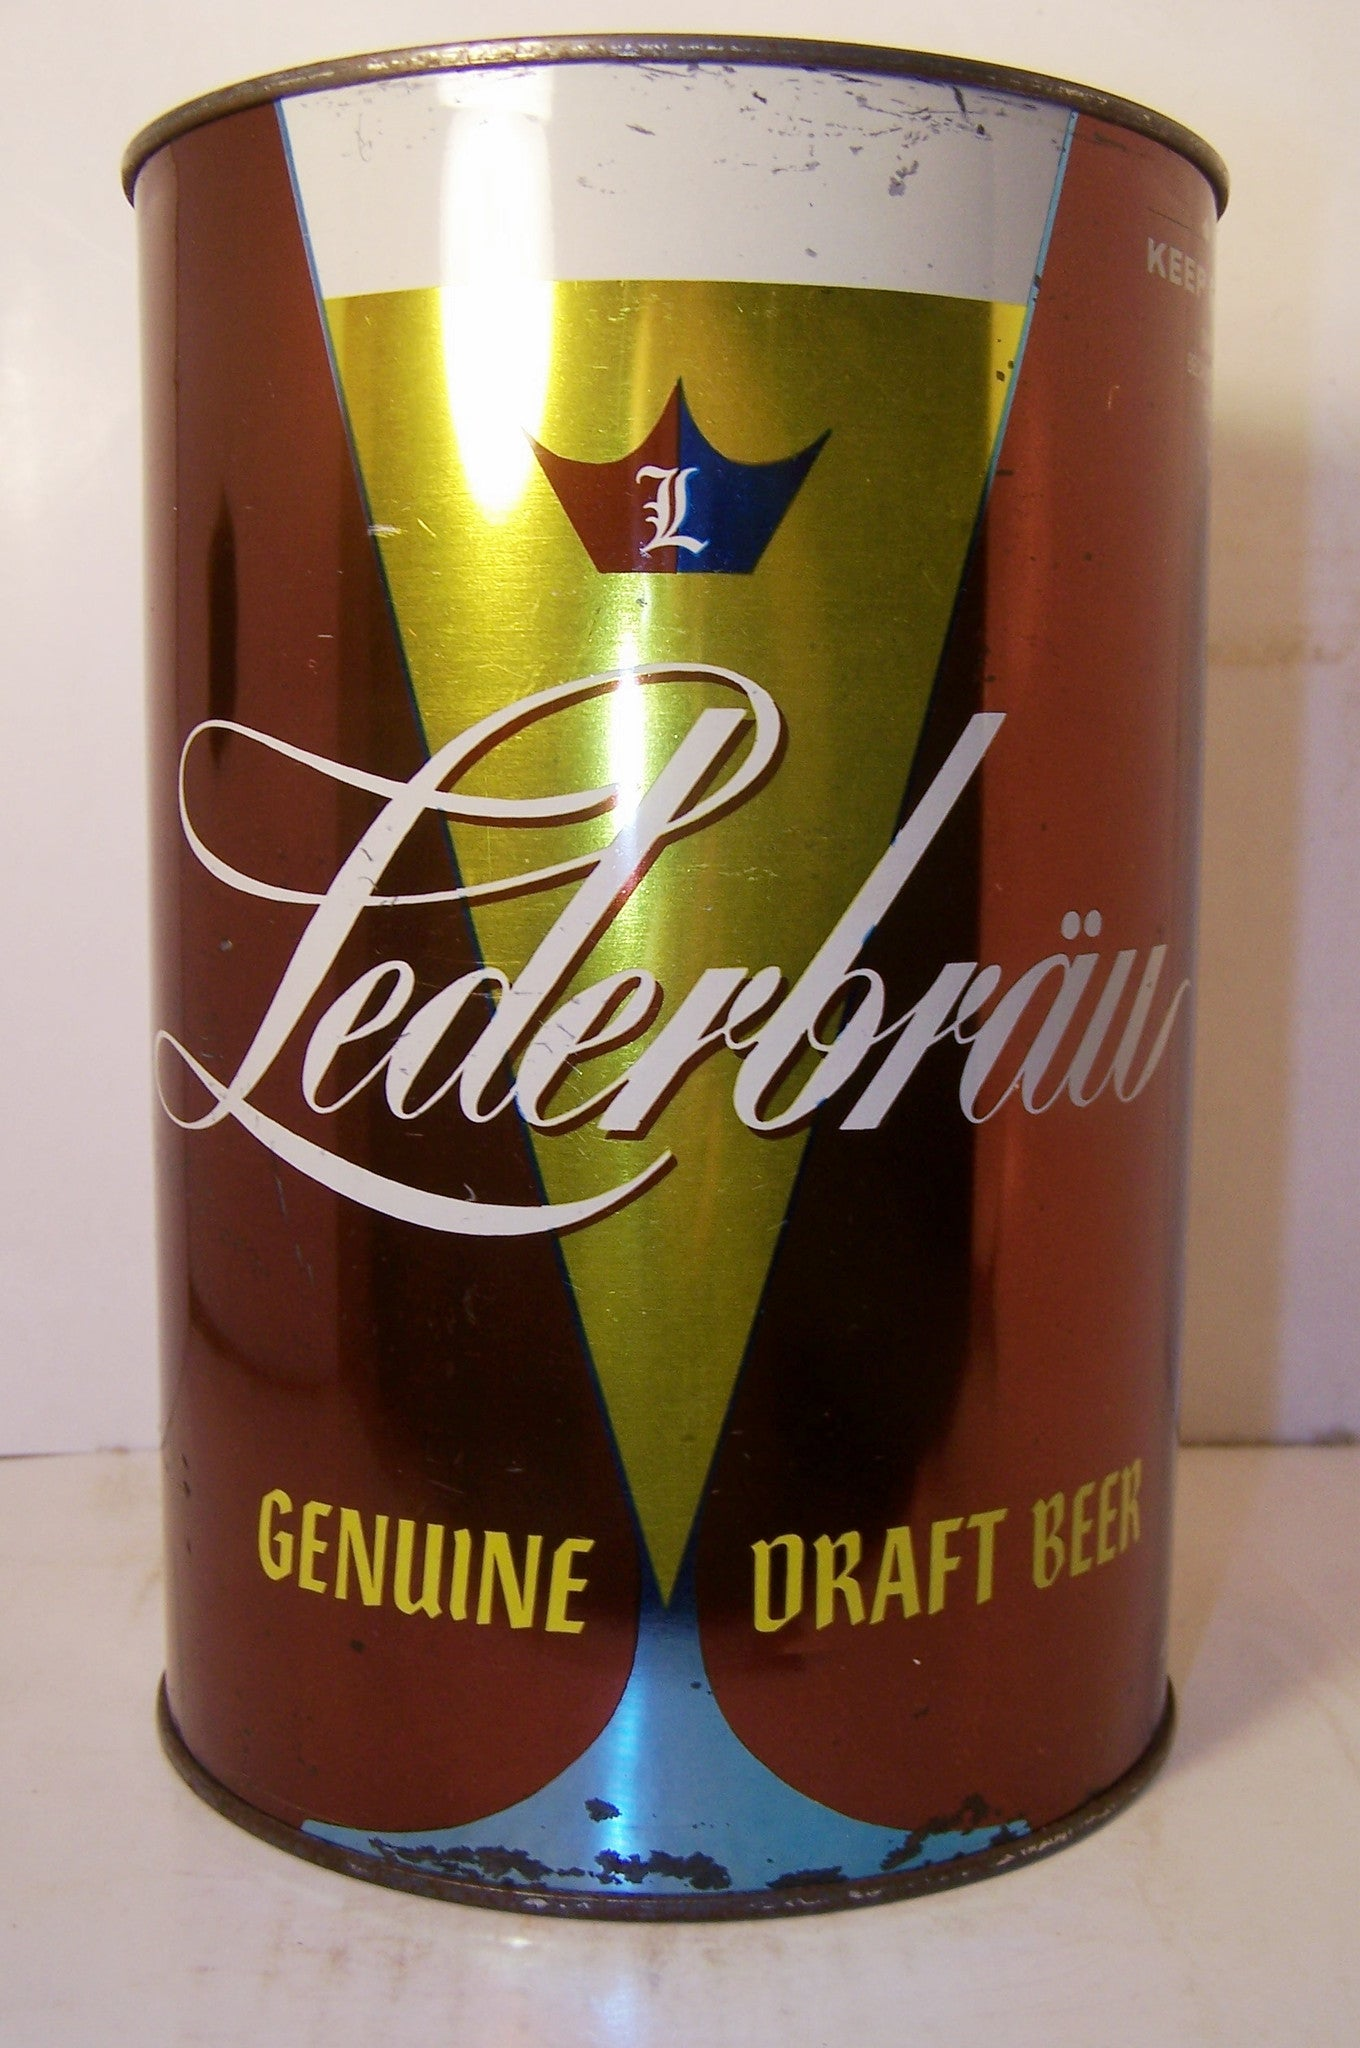 Lederbrau Genuine Draft Beer, USBC 245-11, Grade 1/1-  Sold  12/2/14